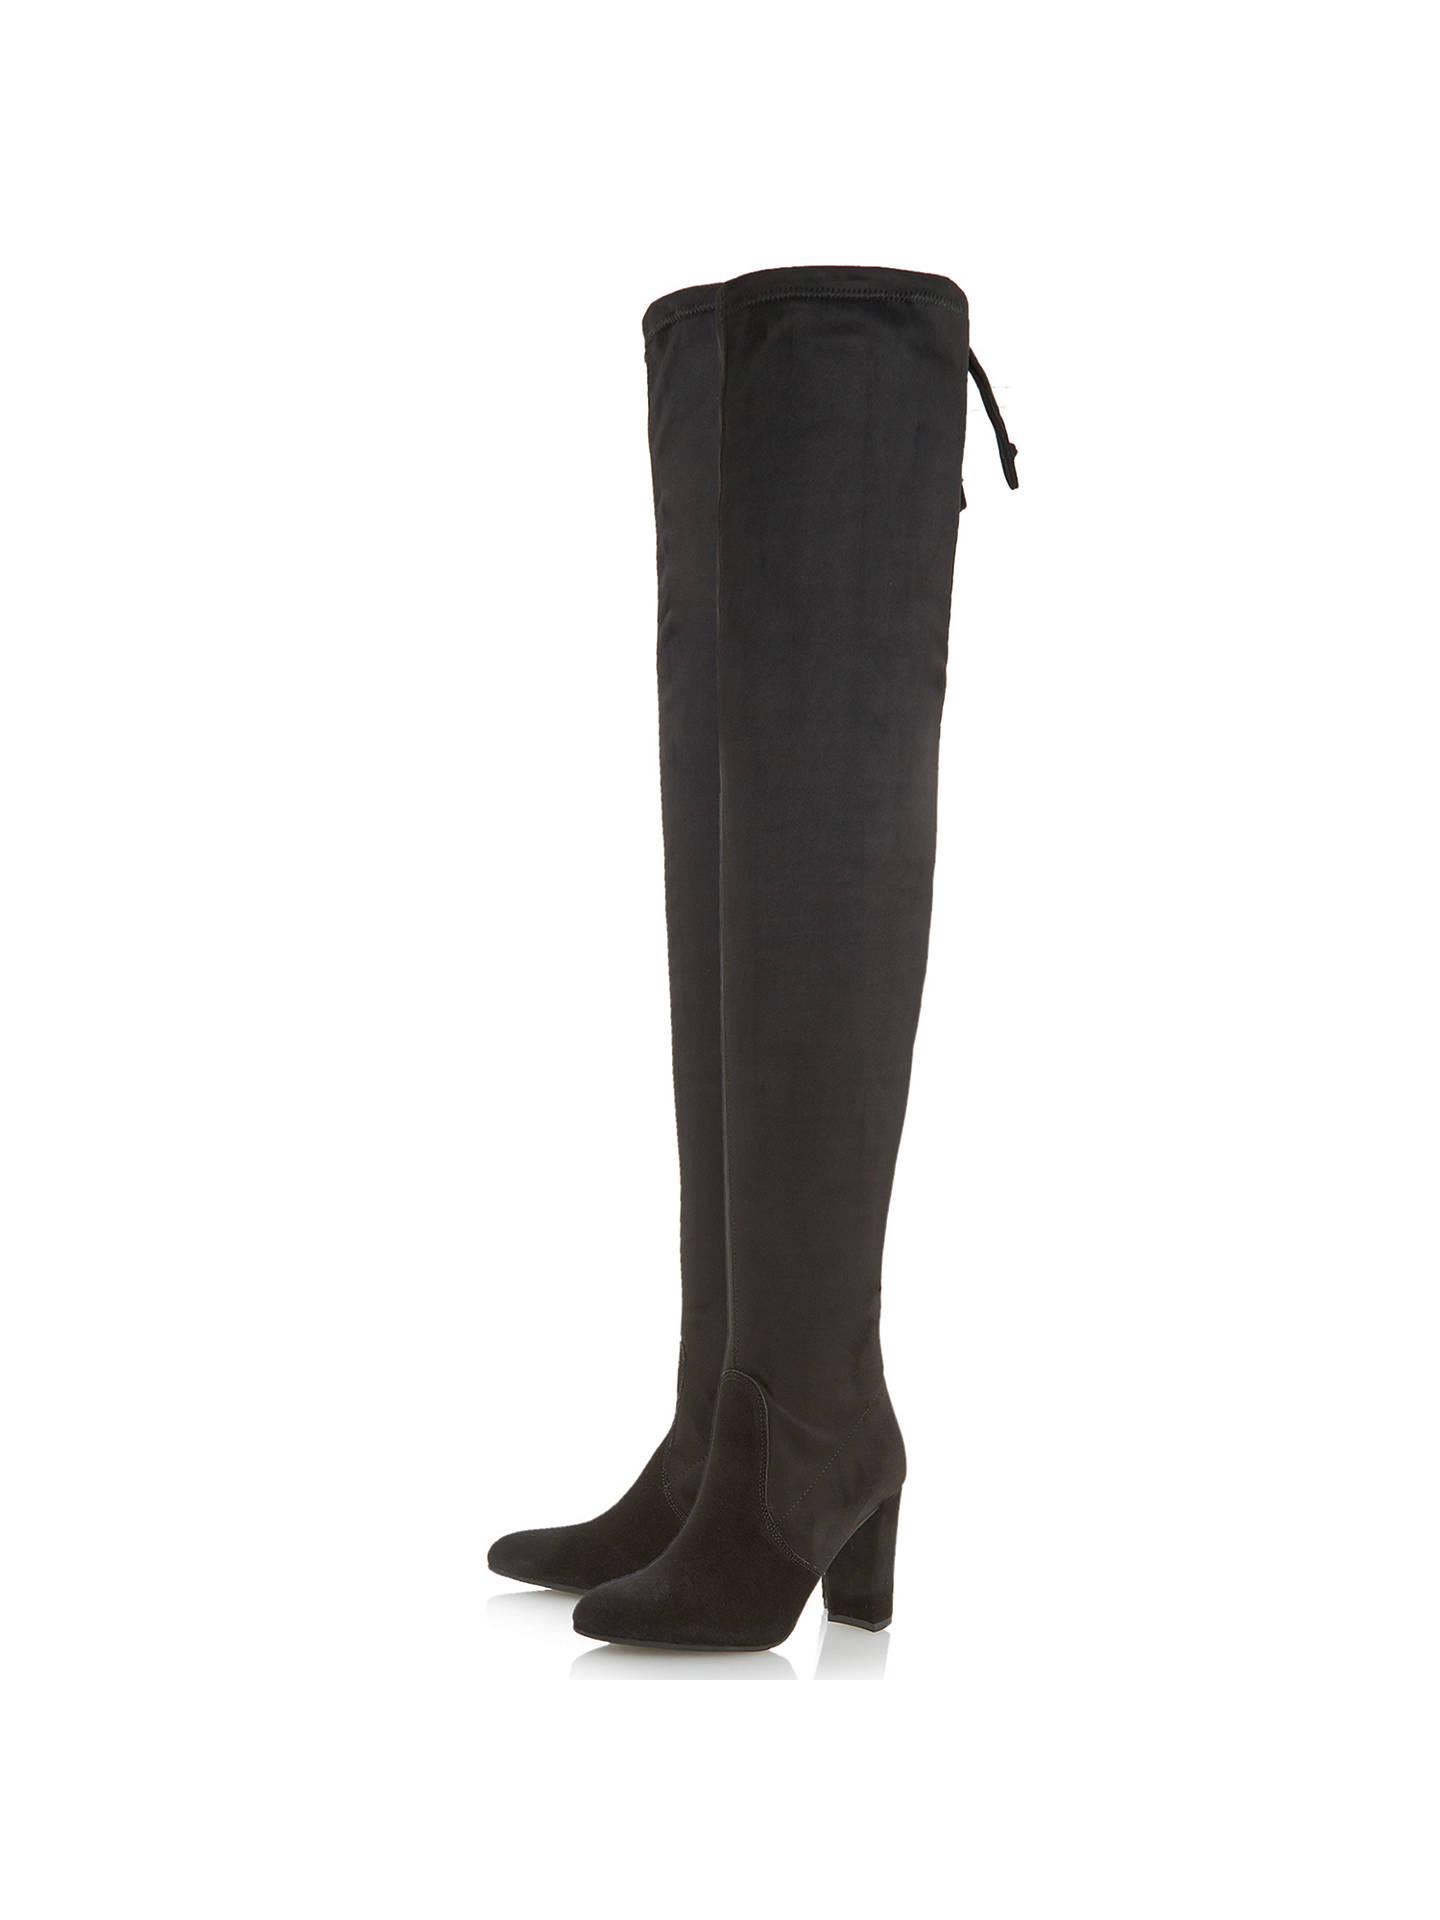 Dune Sibyl Block Heeled Over the Knee Boots, Black Suede at